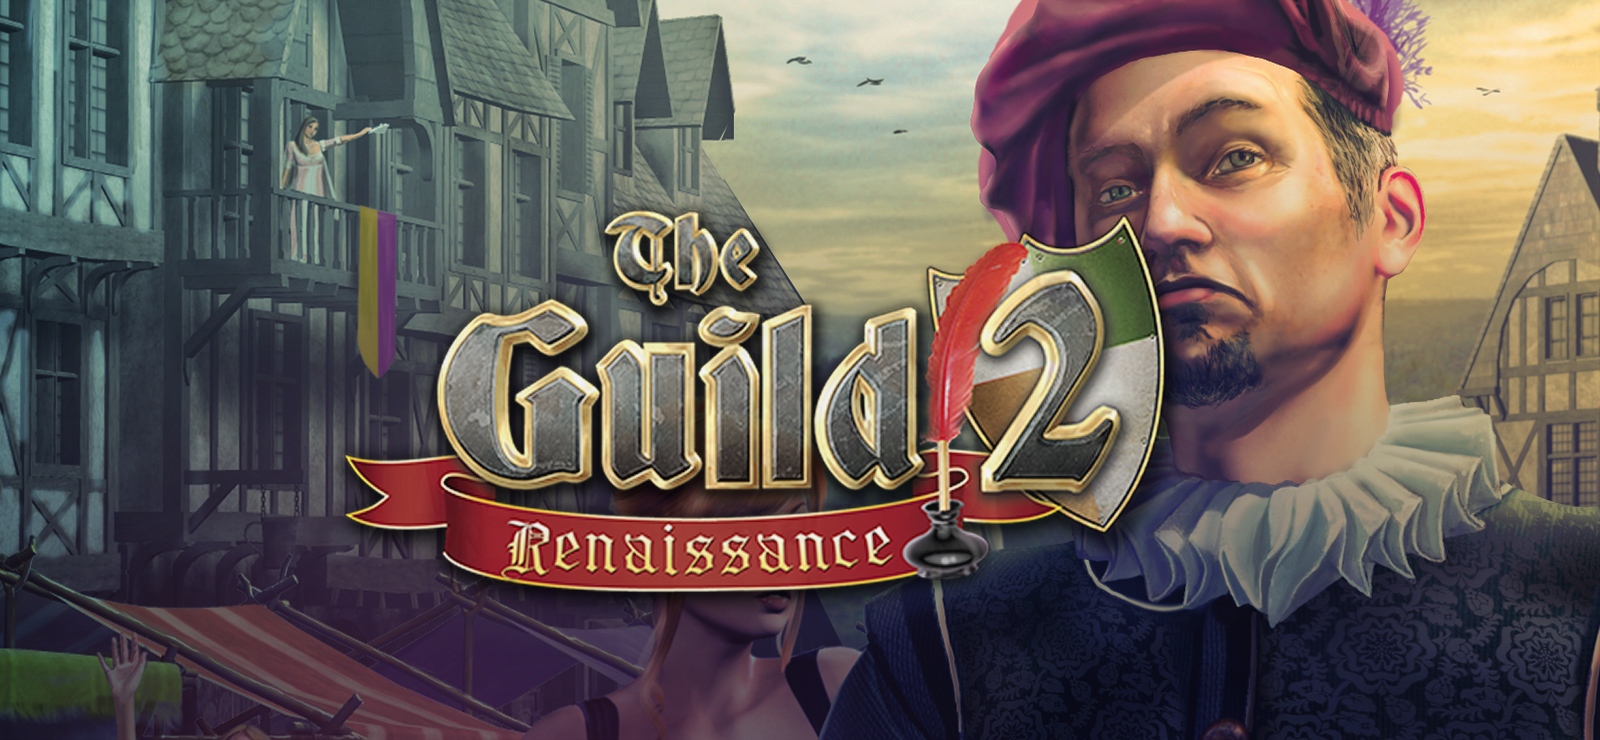 #The Guild 2 Renaissance